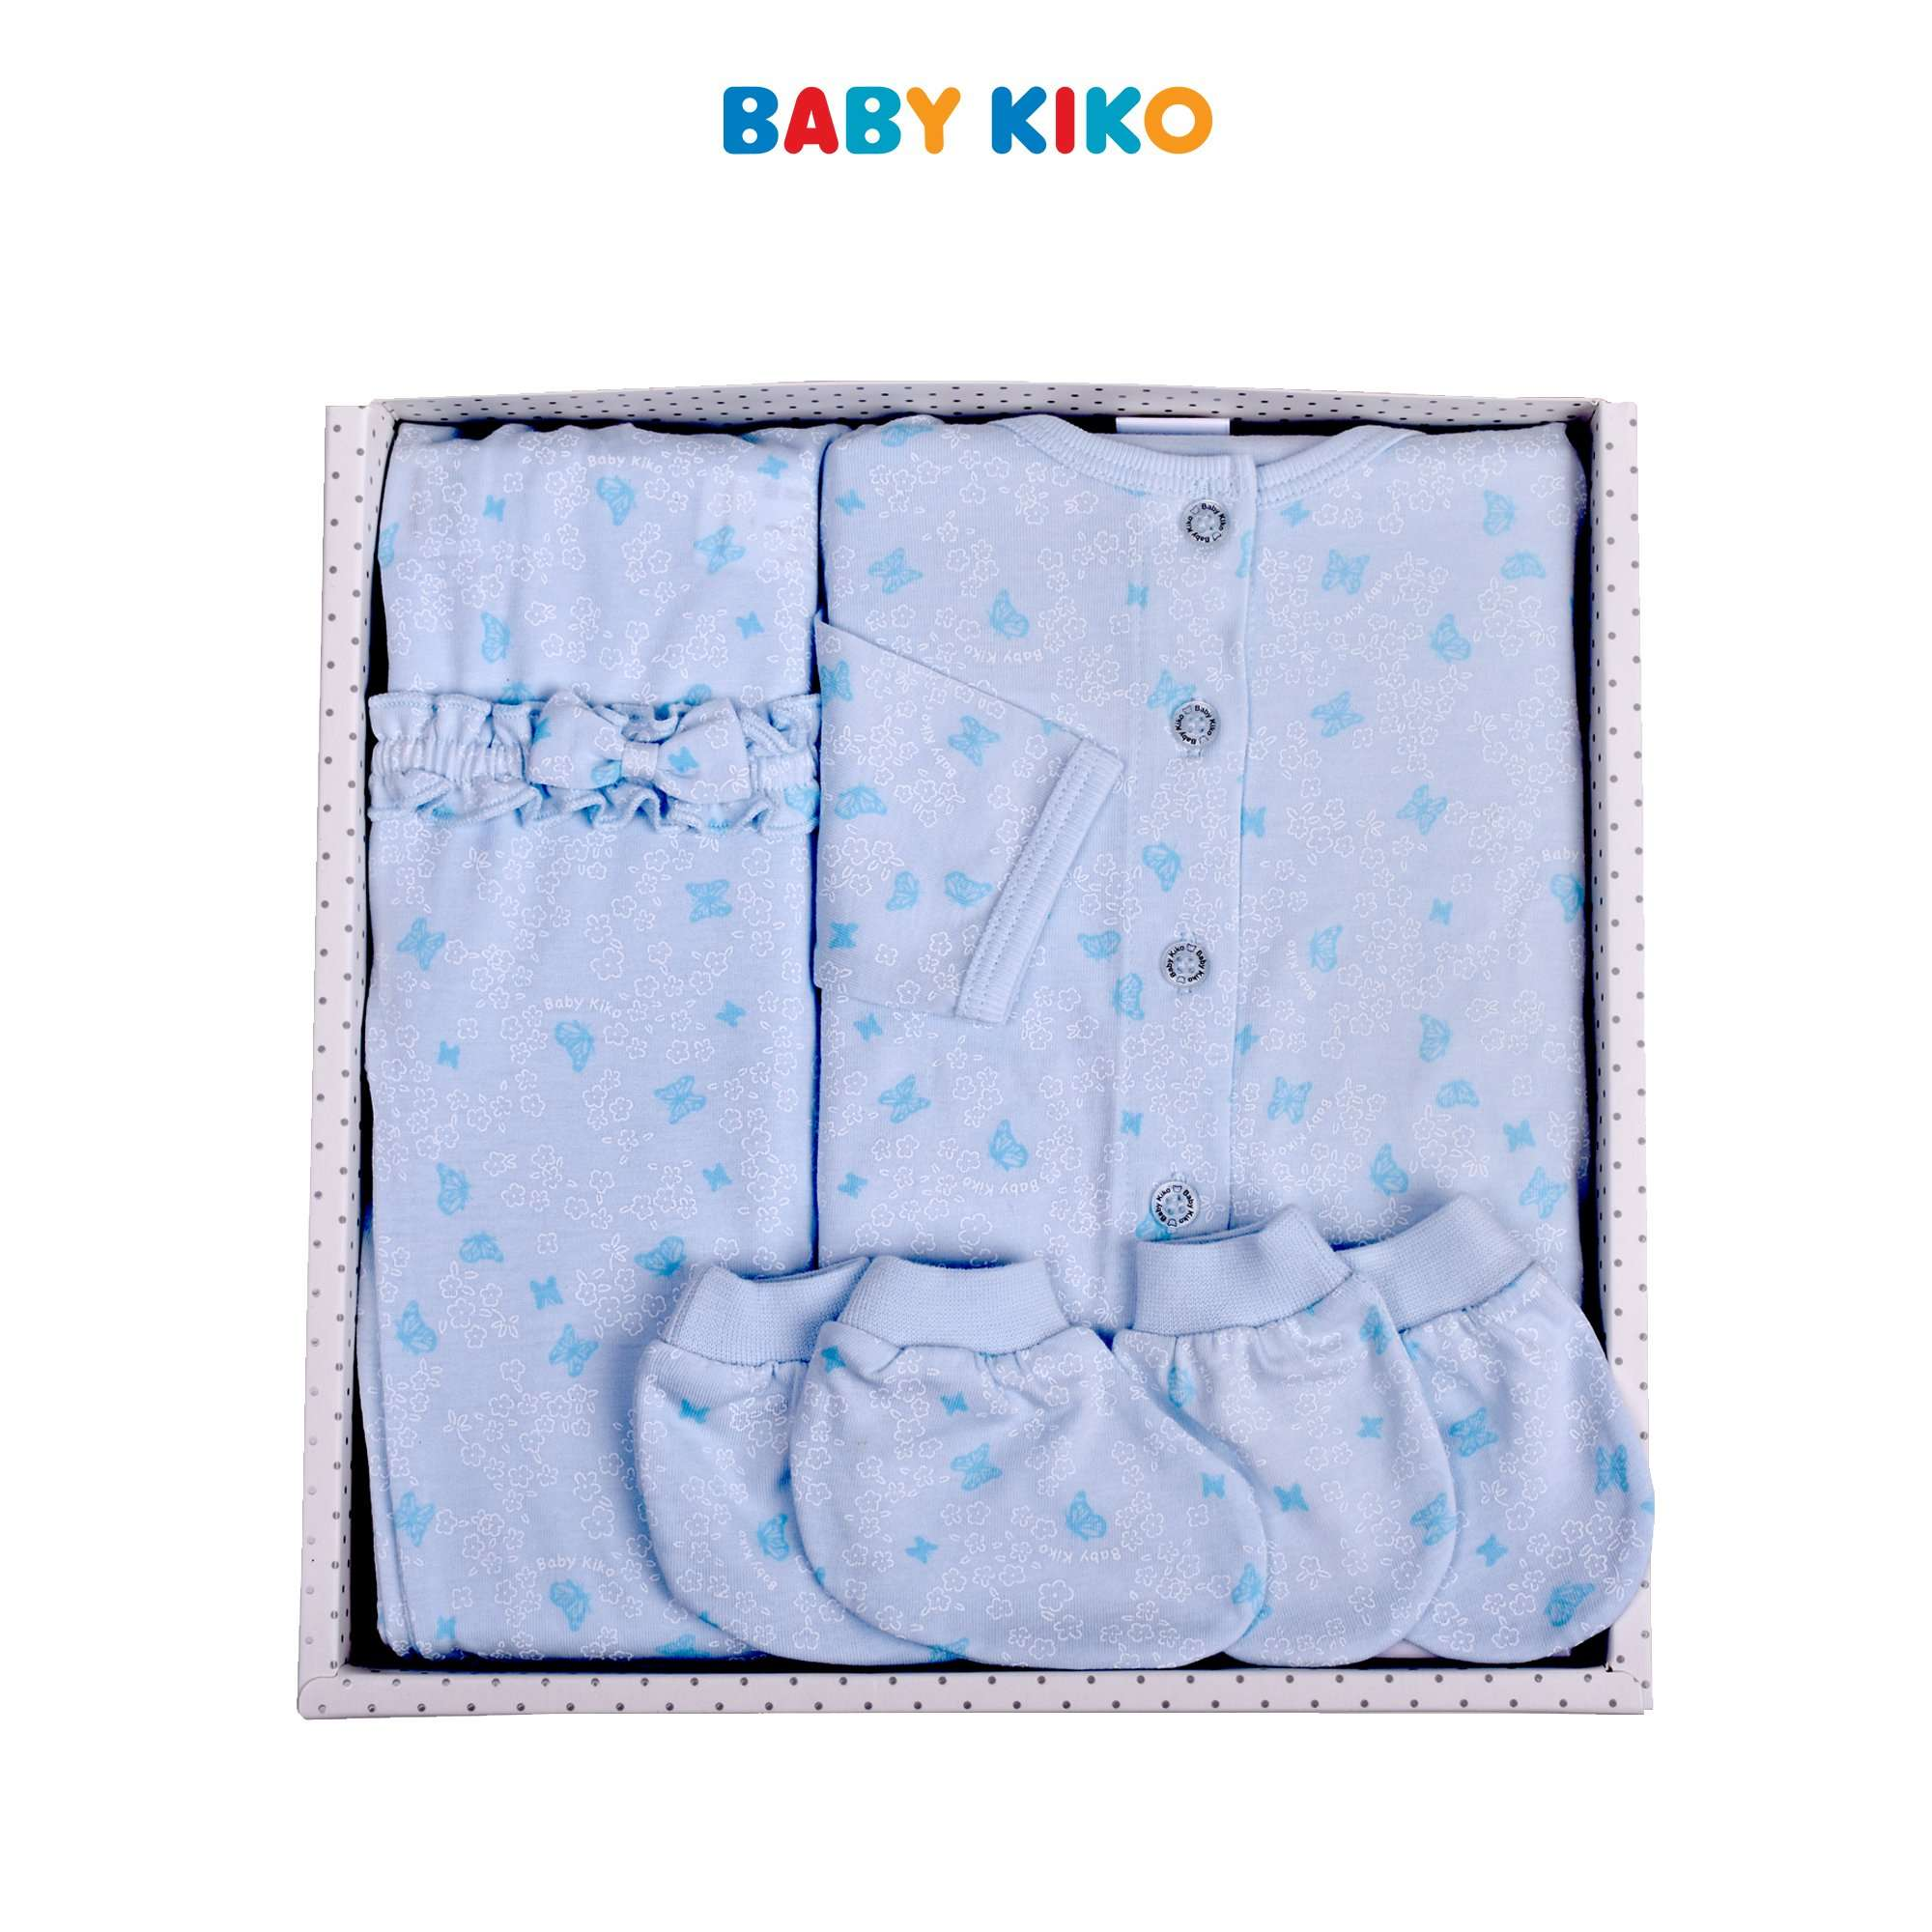 Baby KIKO New Born Baby Boy Gift Set-Floral Blue 320159-601 : Buy Baby KIKO online at CMG.MY